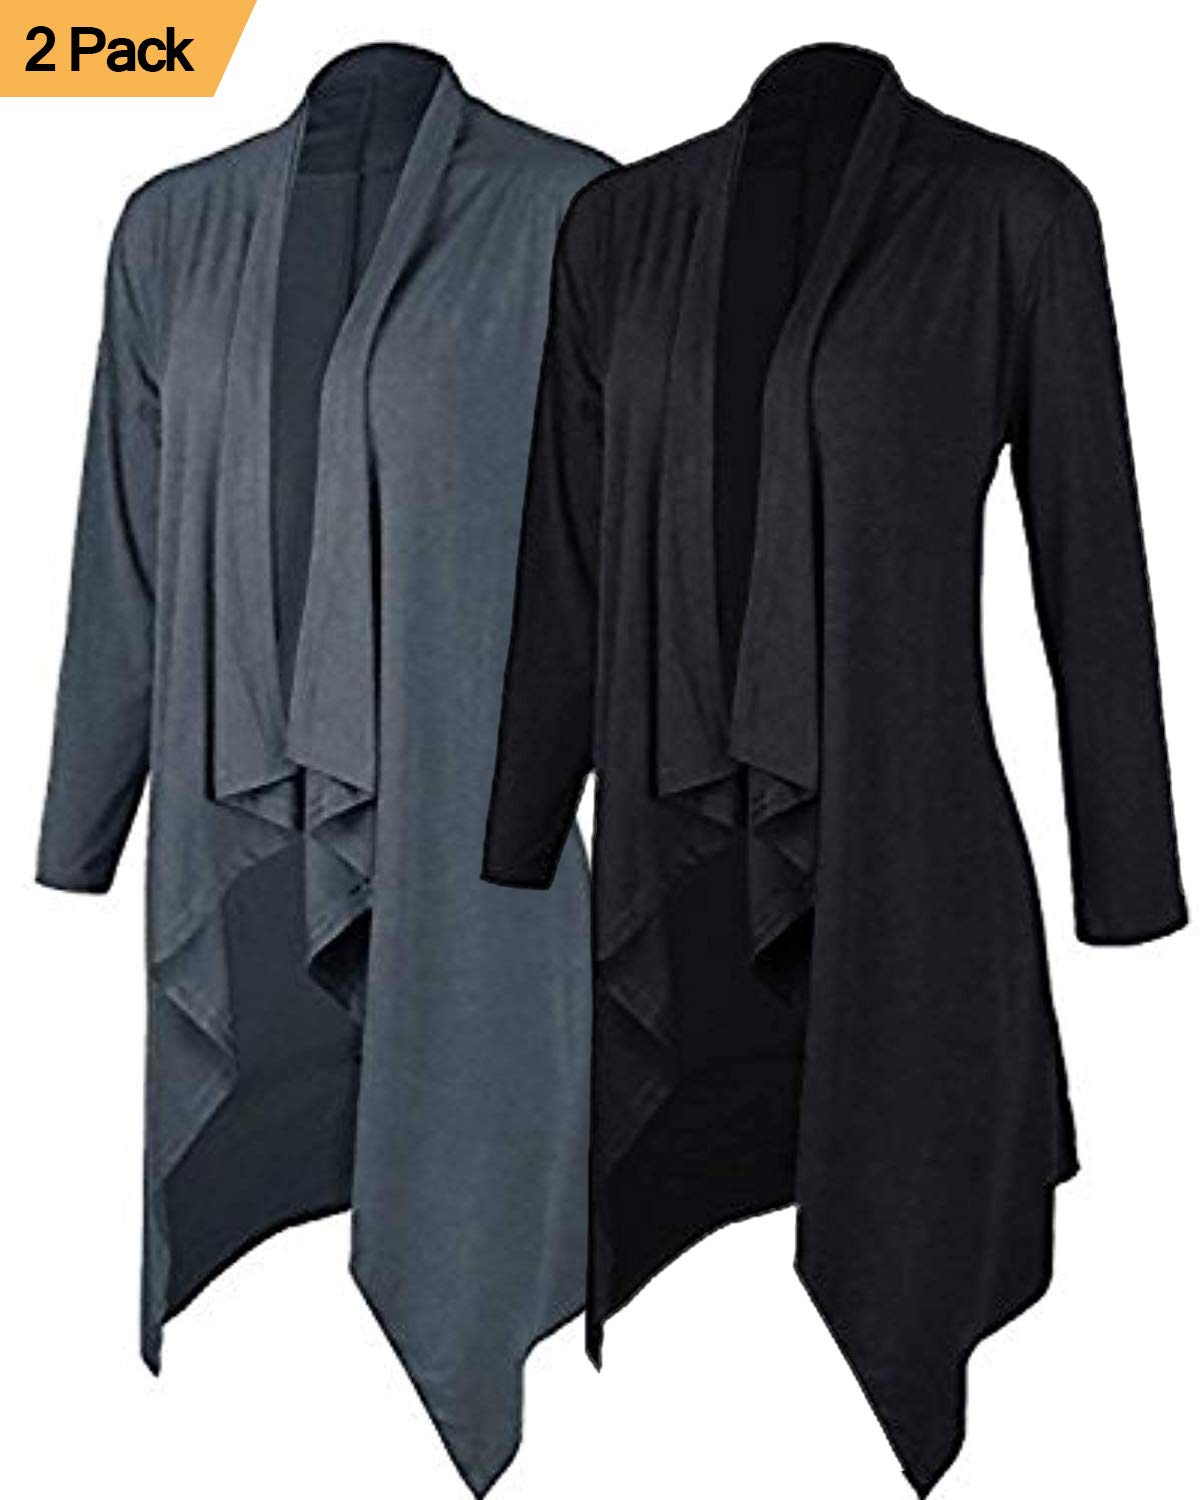 ZITY Cardigans for Women/Solid Lightweight Open Front Waterfall Draped Trench Coat Cardigan